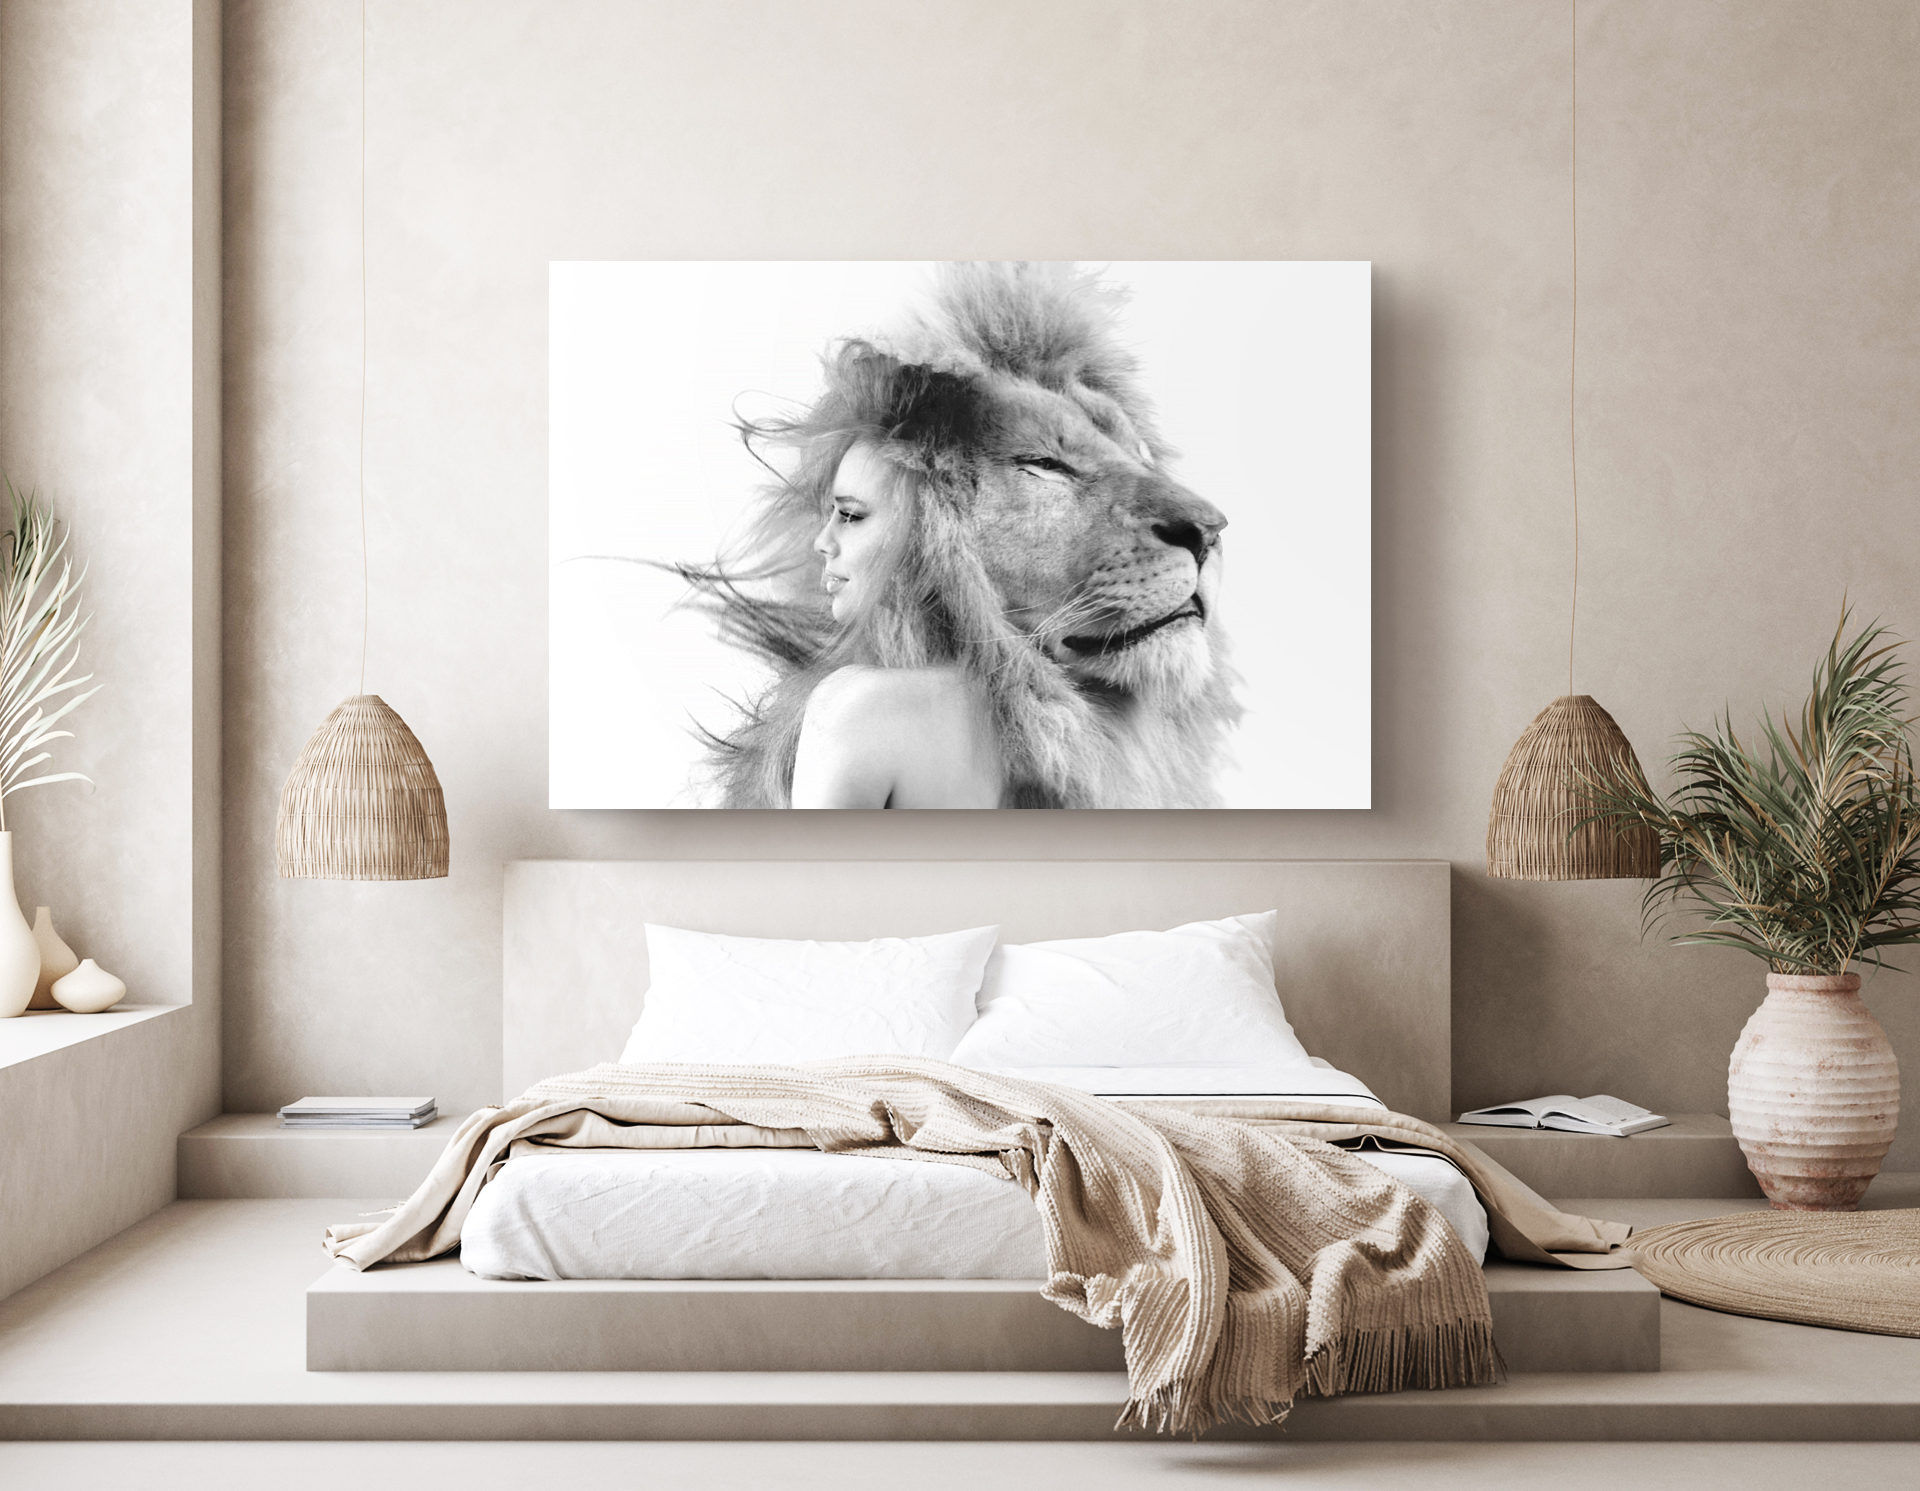 portrait of woman and lion in bedroom